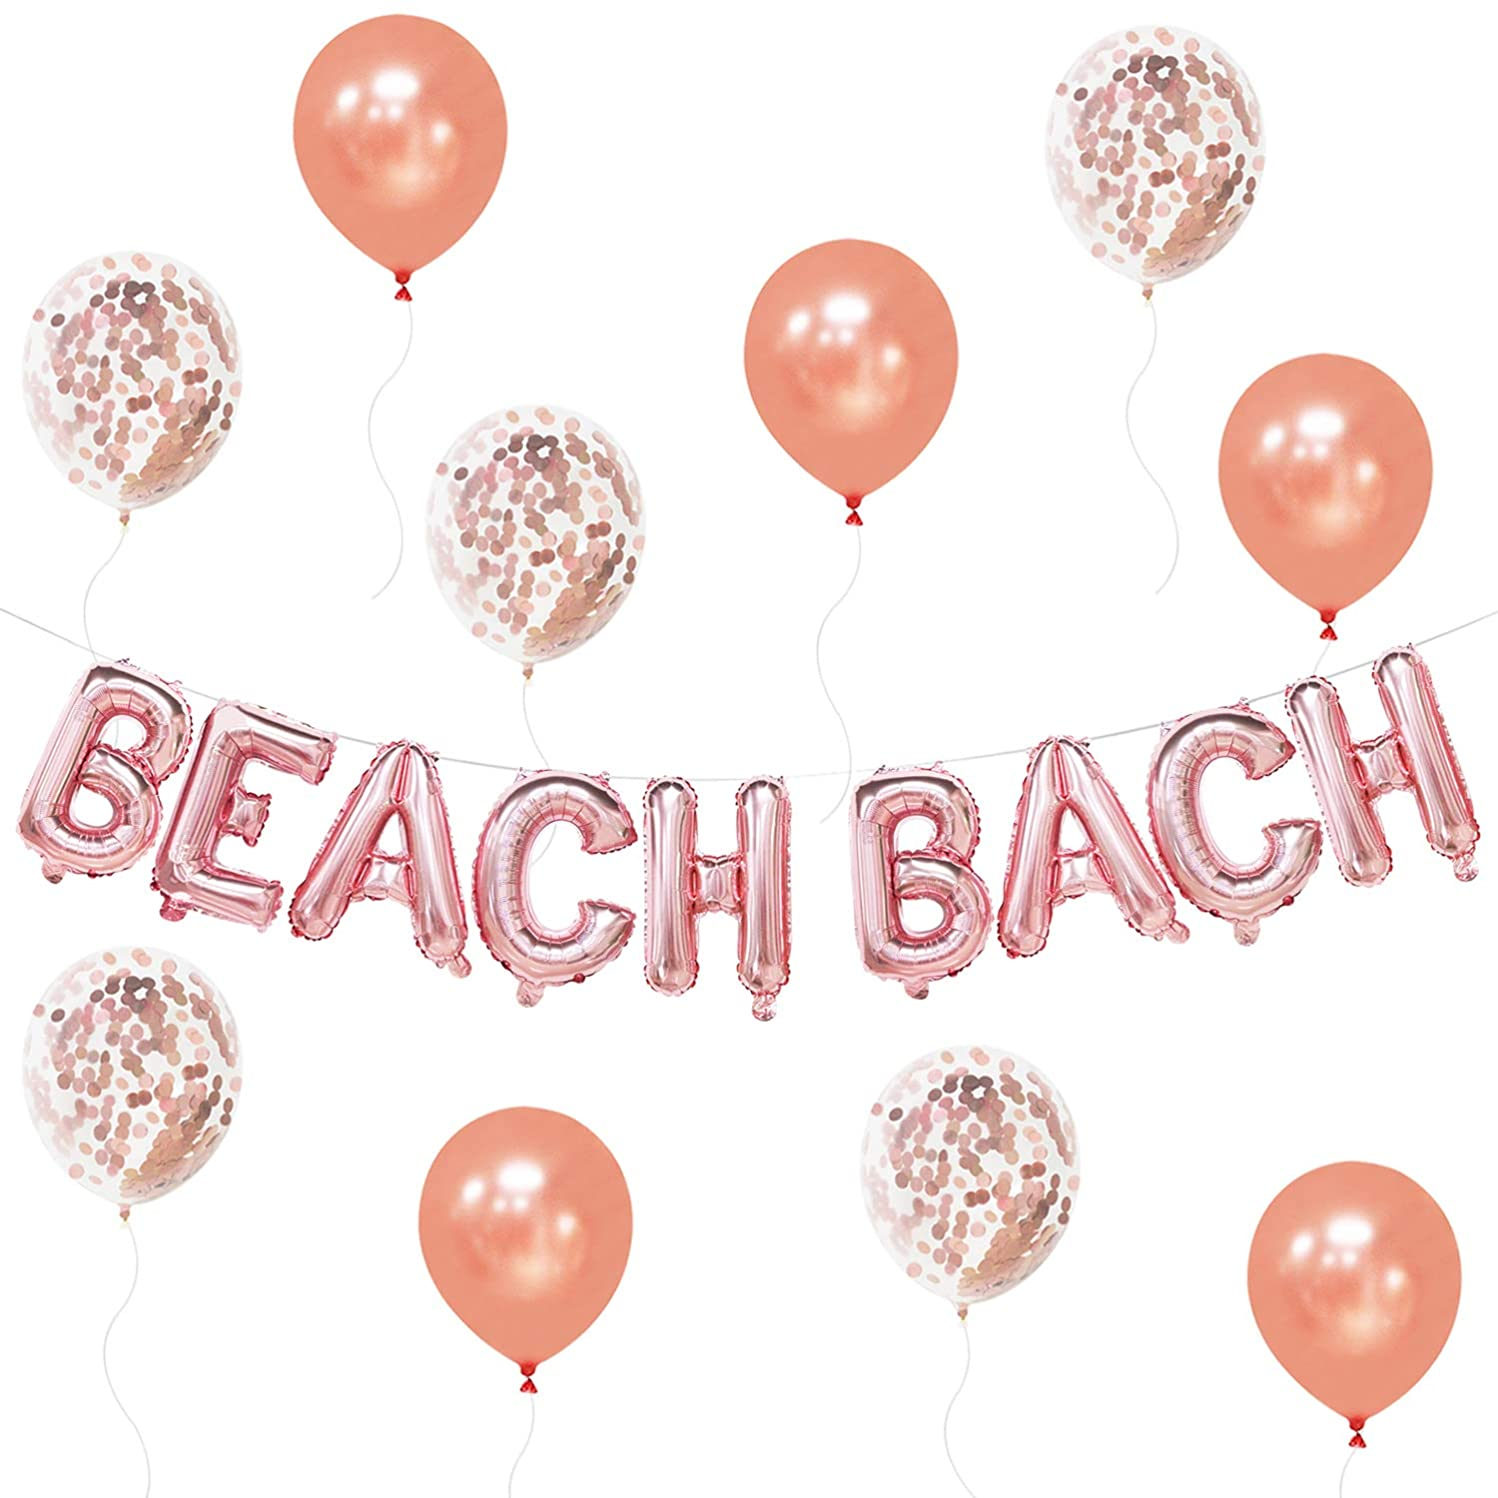 Beach Bach Balloons Banner - Beach Bachelorette Party Decorations - Beach Party Balloons - Extra Rose Gold Confetti Balloons and Latex Balloons